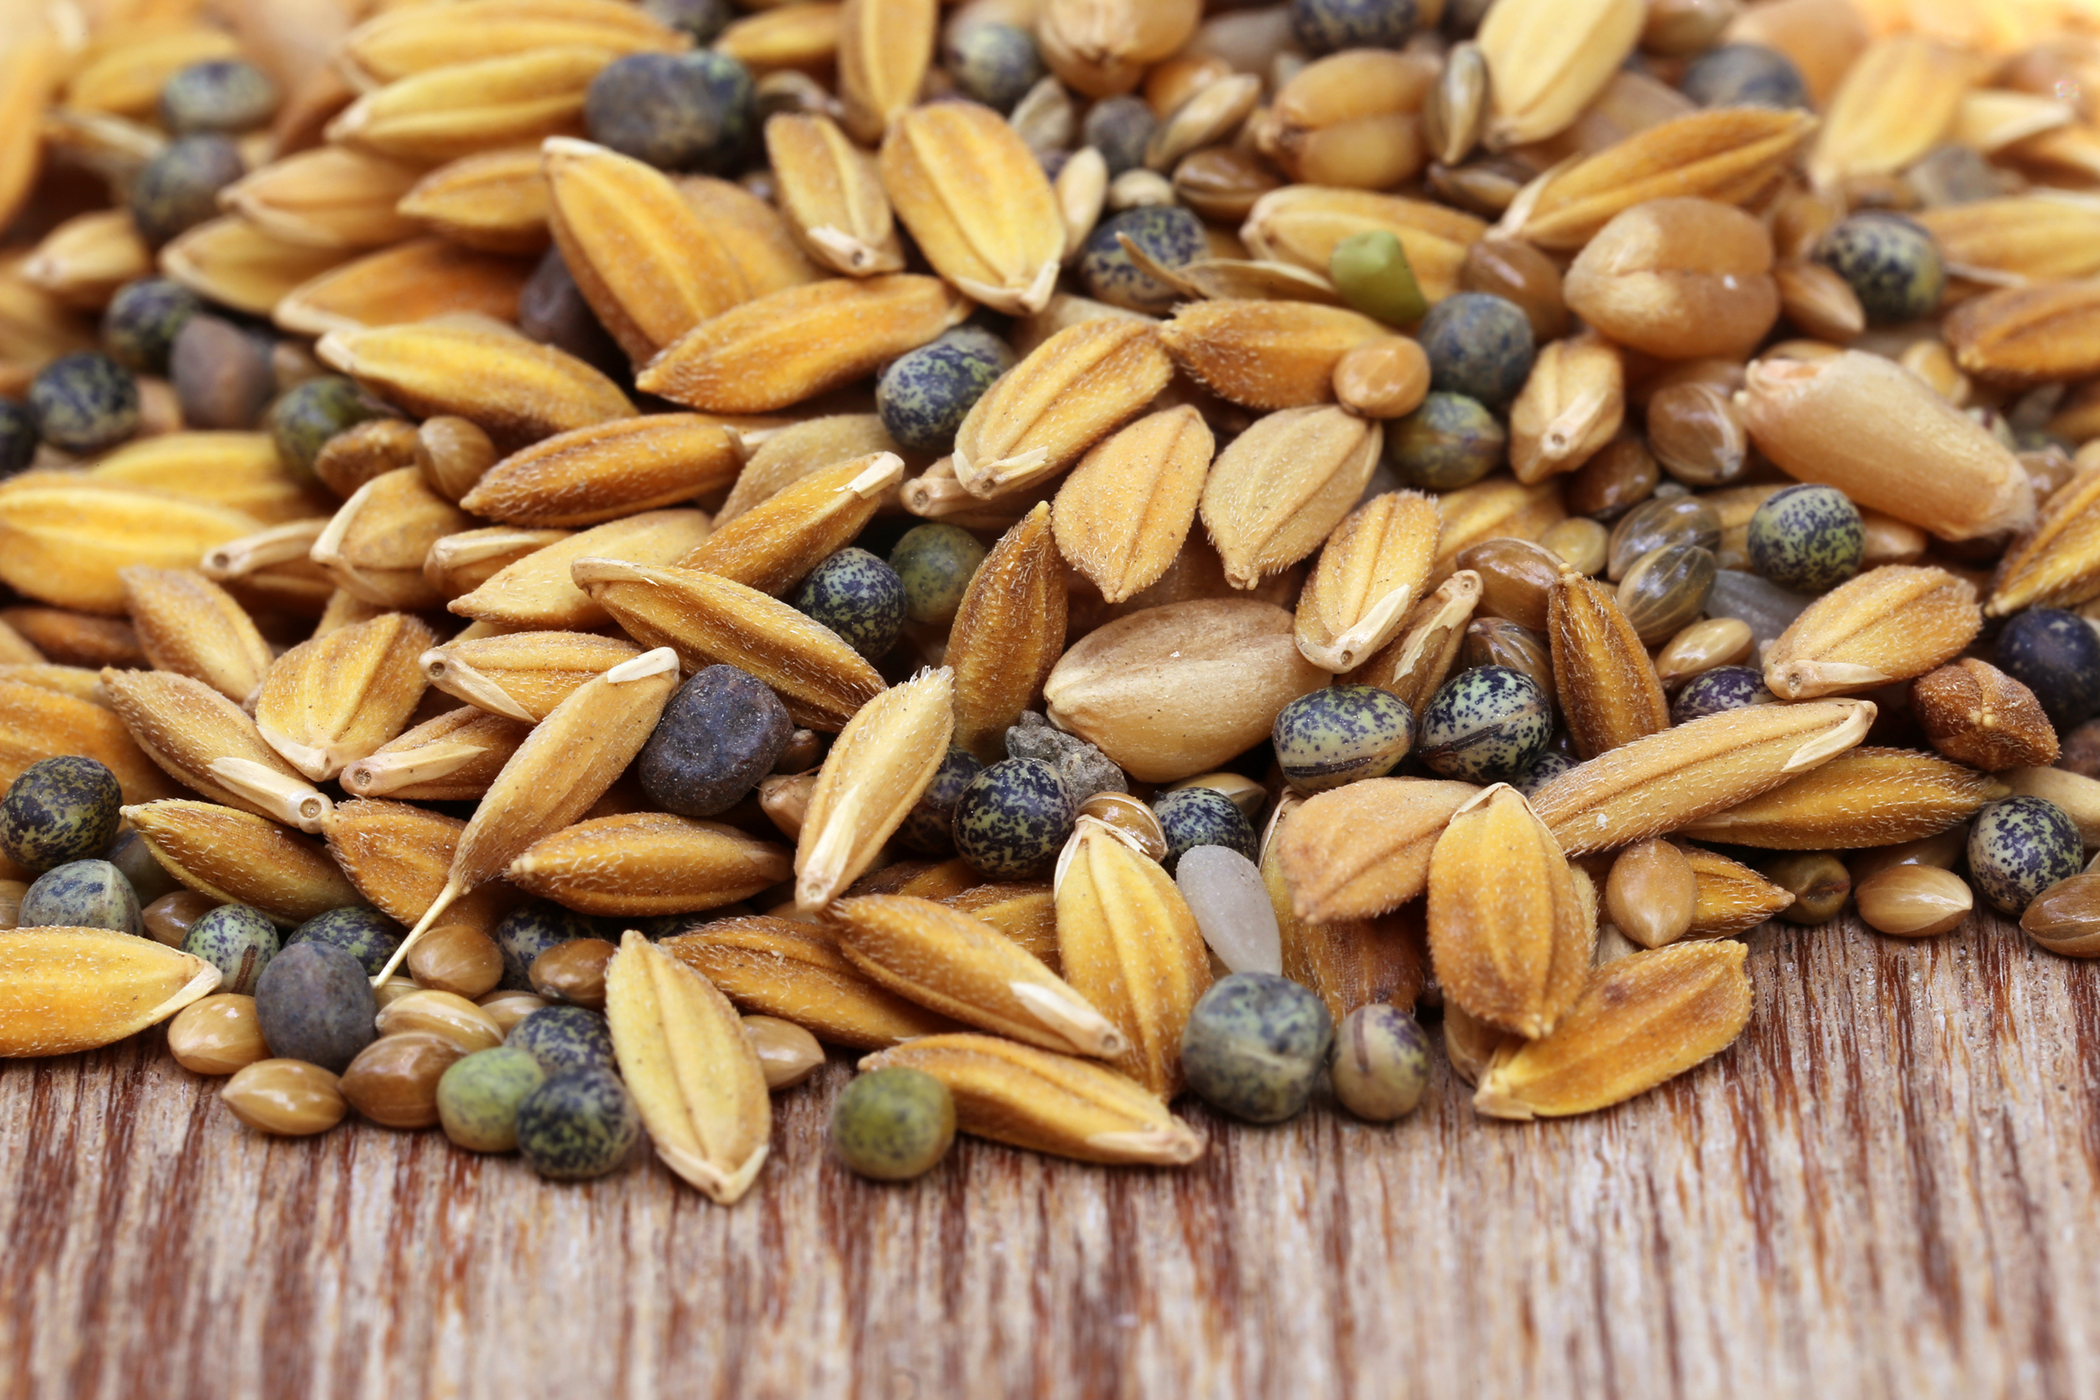 Grain Free Food Allergy in Cats